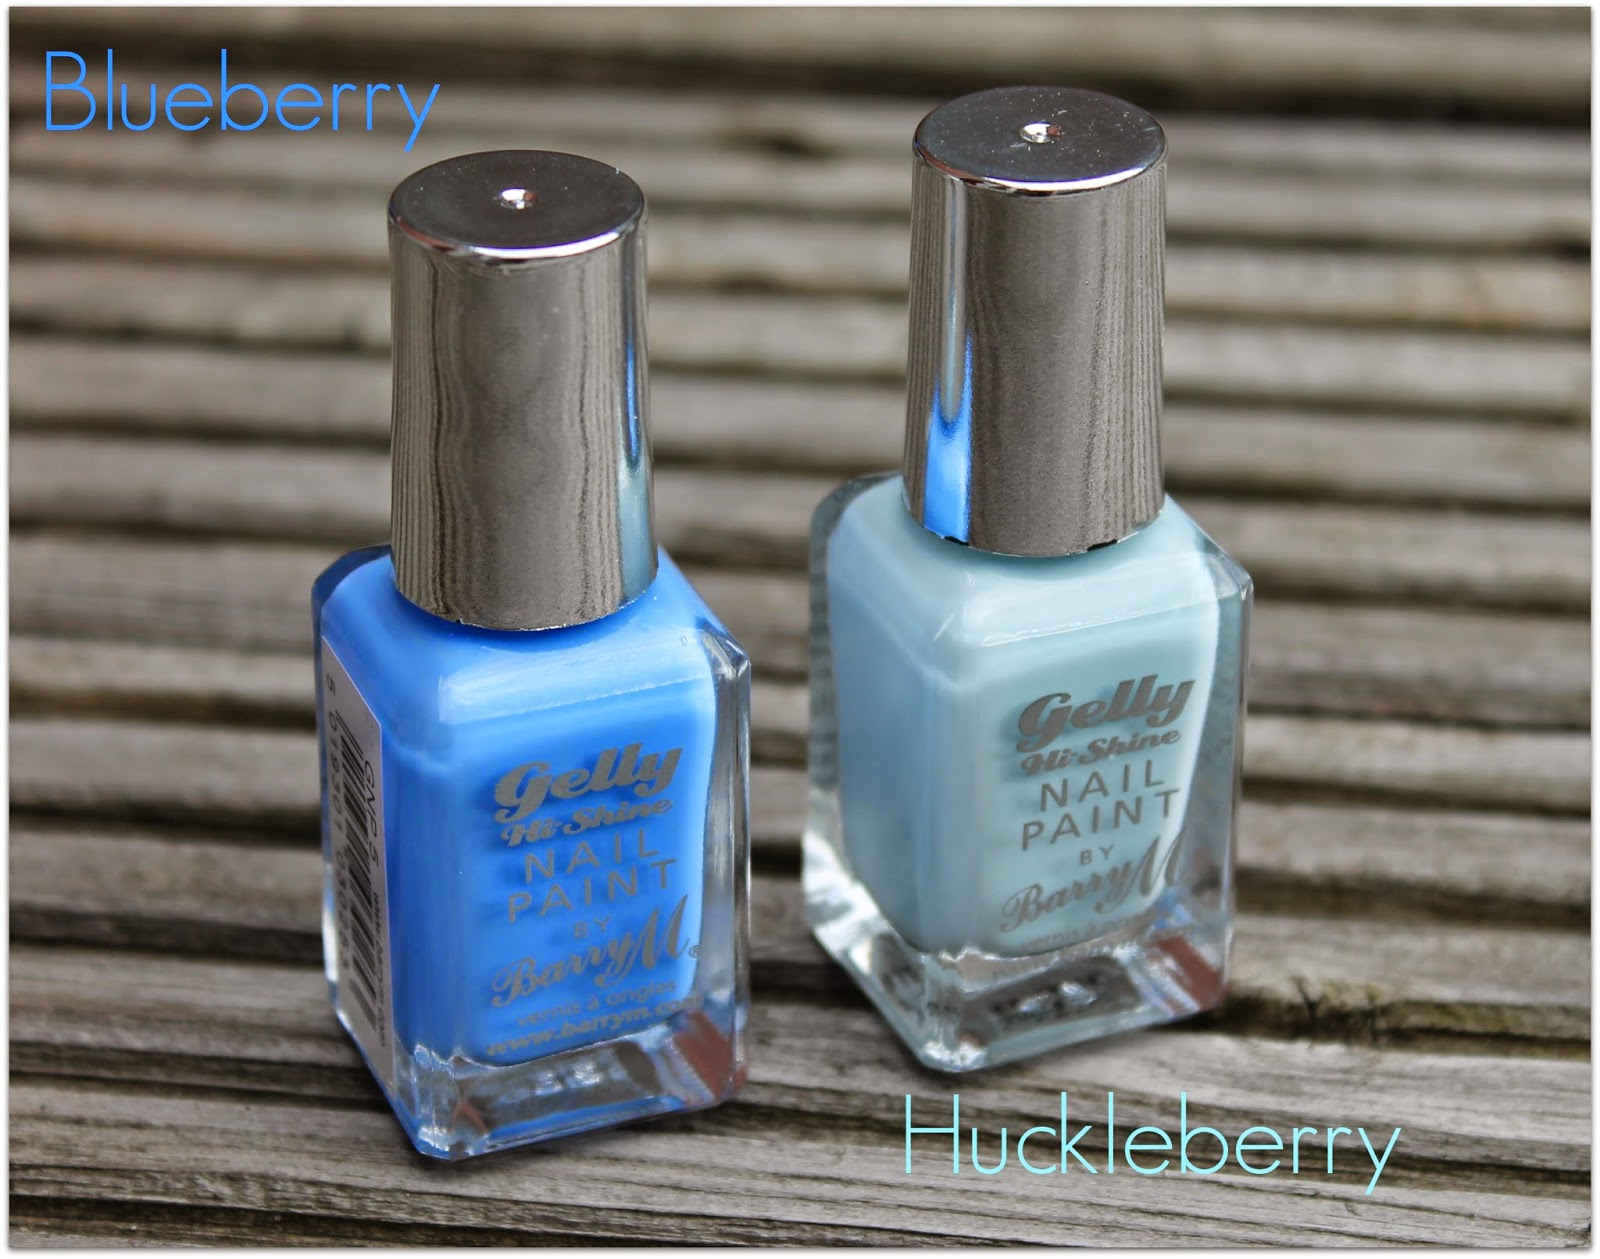 Barry M Gelly Hi-Shine Nail Paint